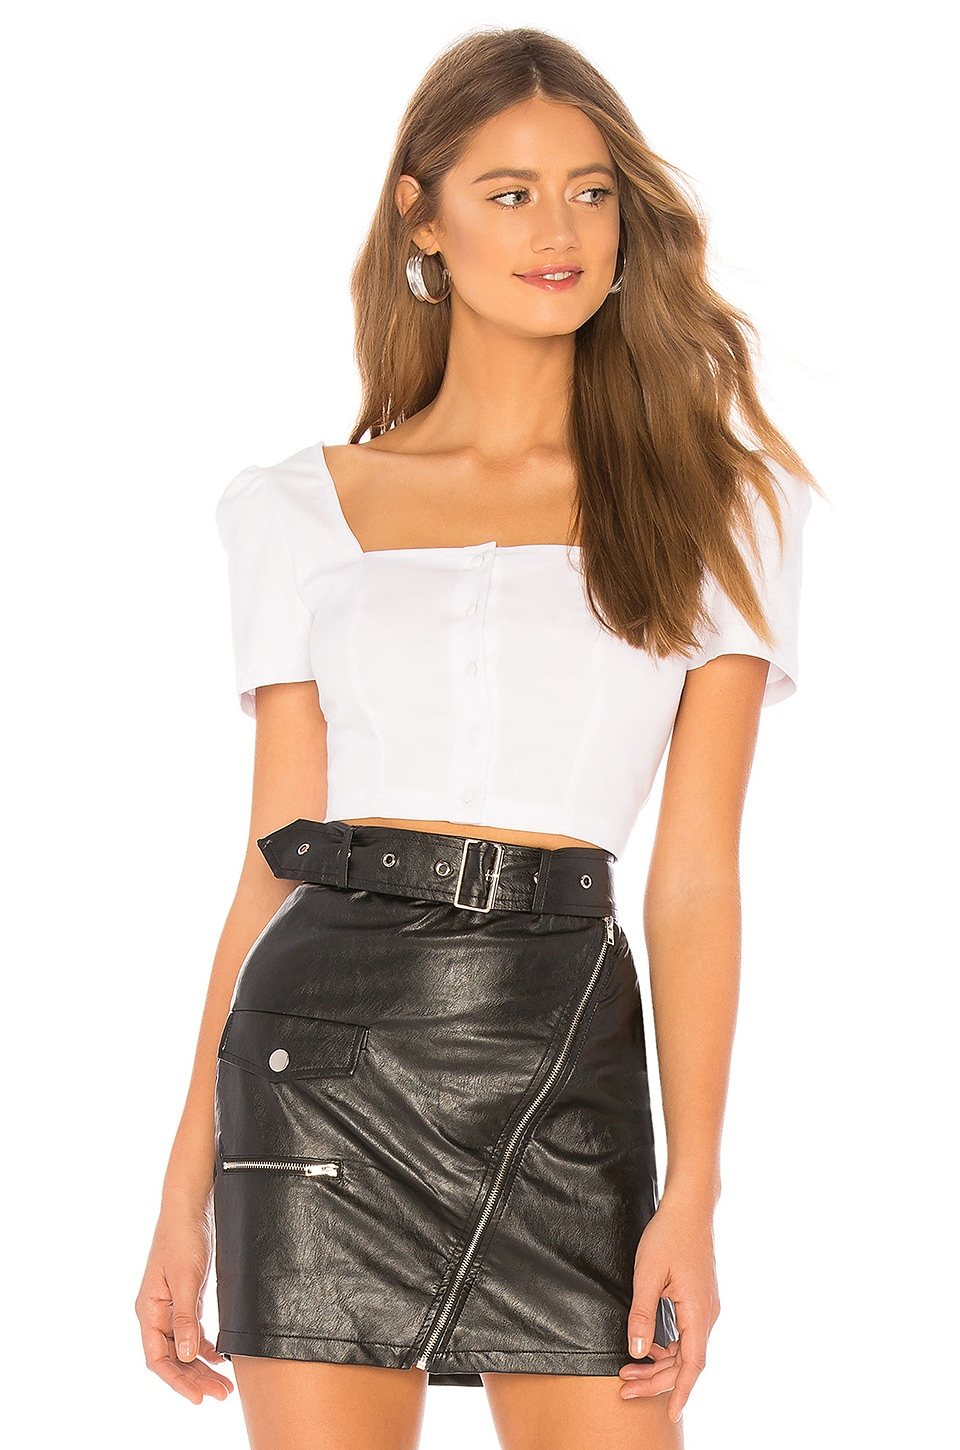 About Us Sandra Poplin Button Up Top in White